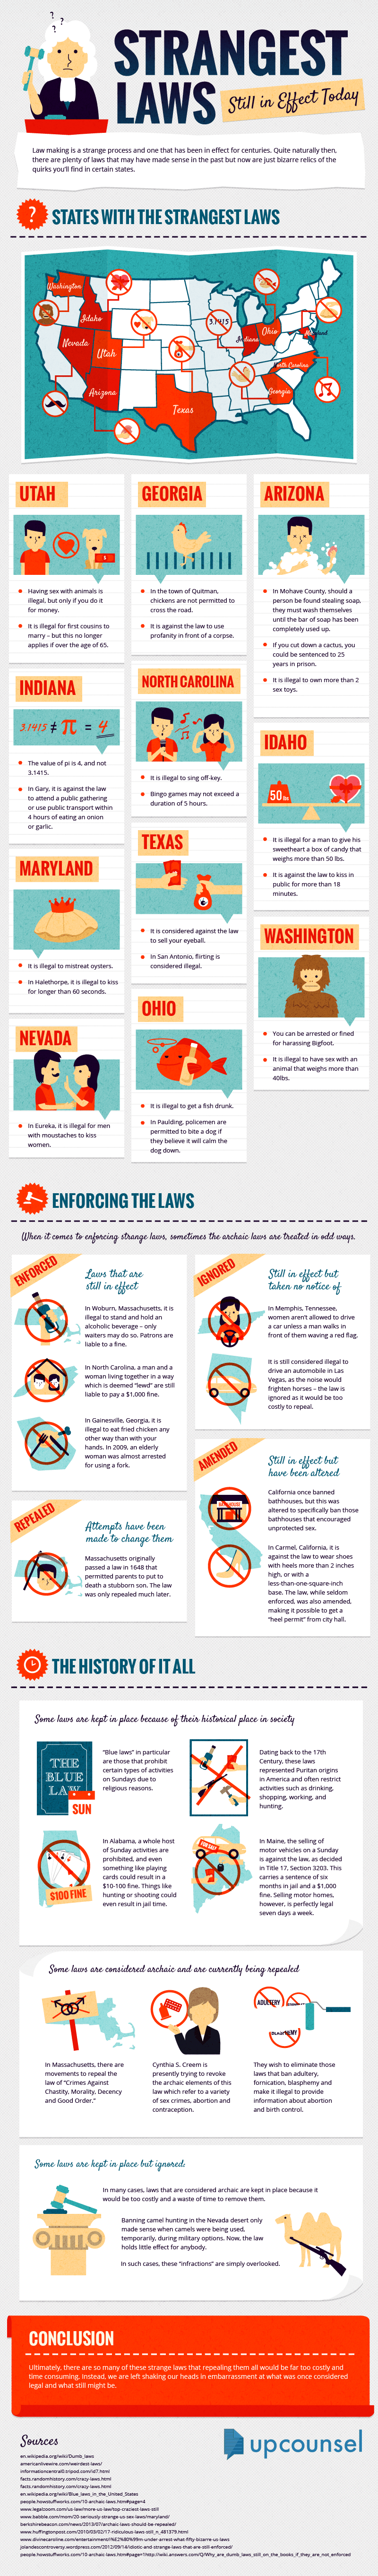 strangest-laws-still-in-effect-today-infographic